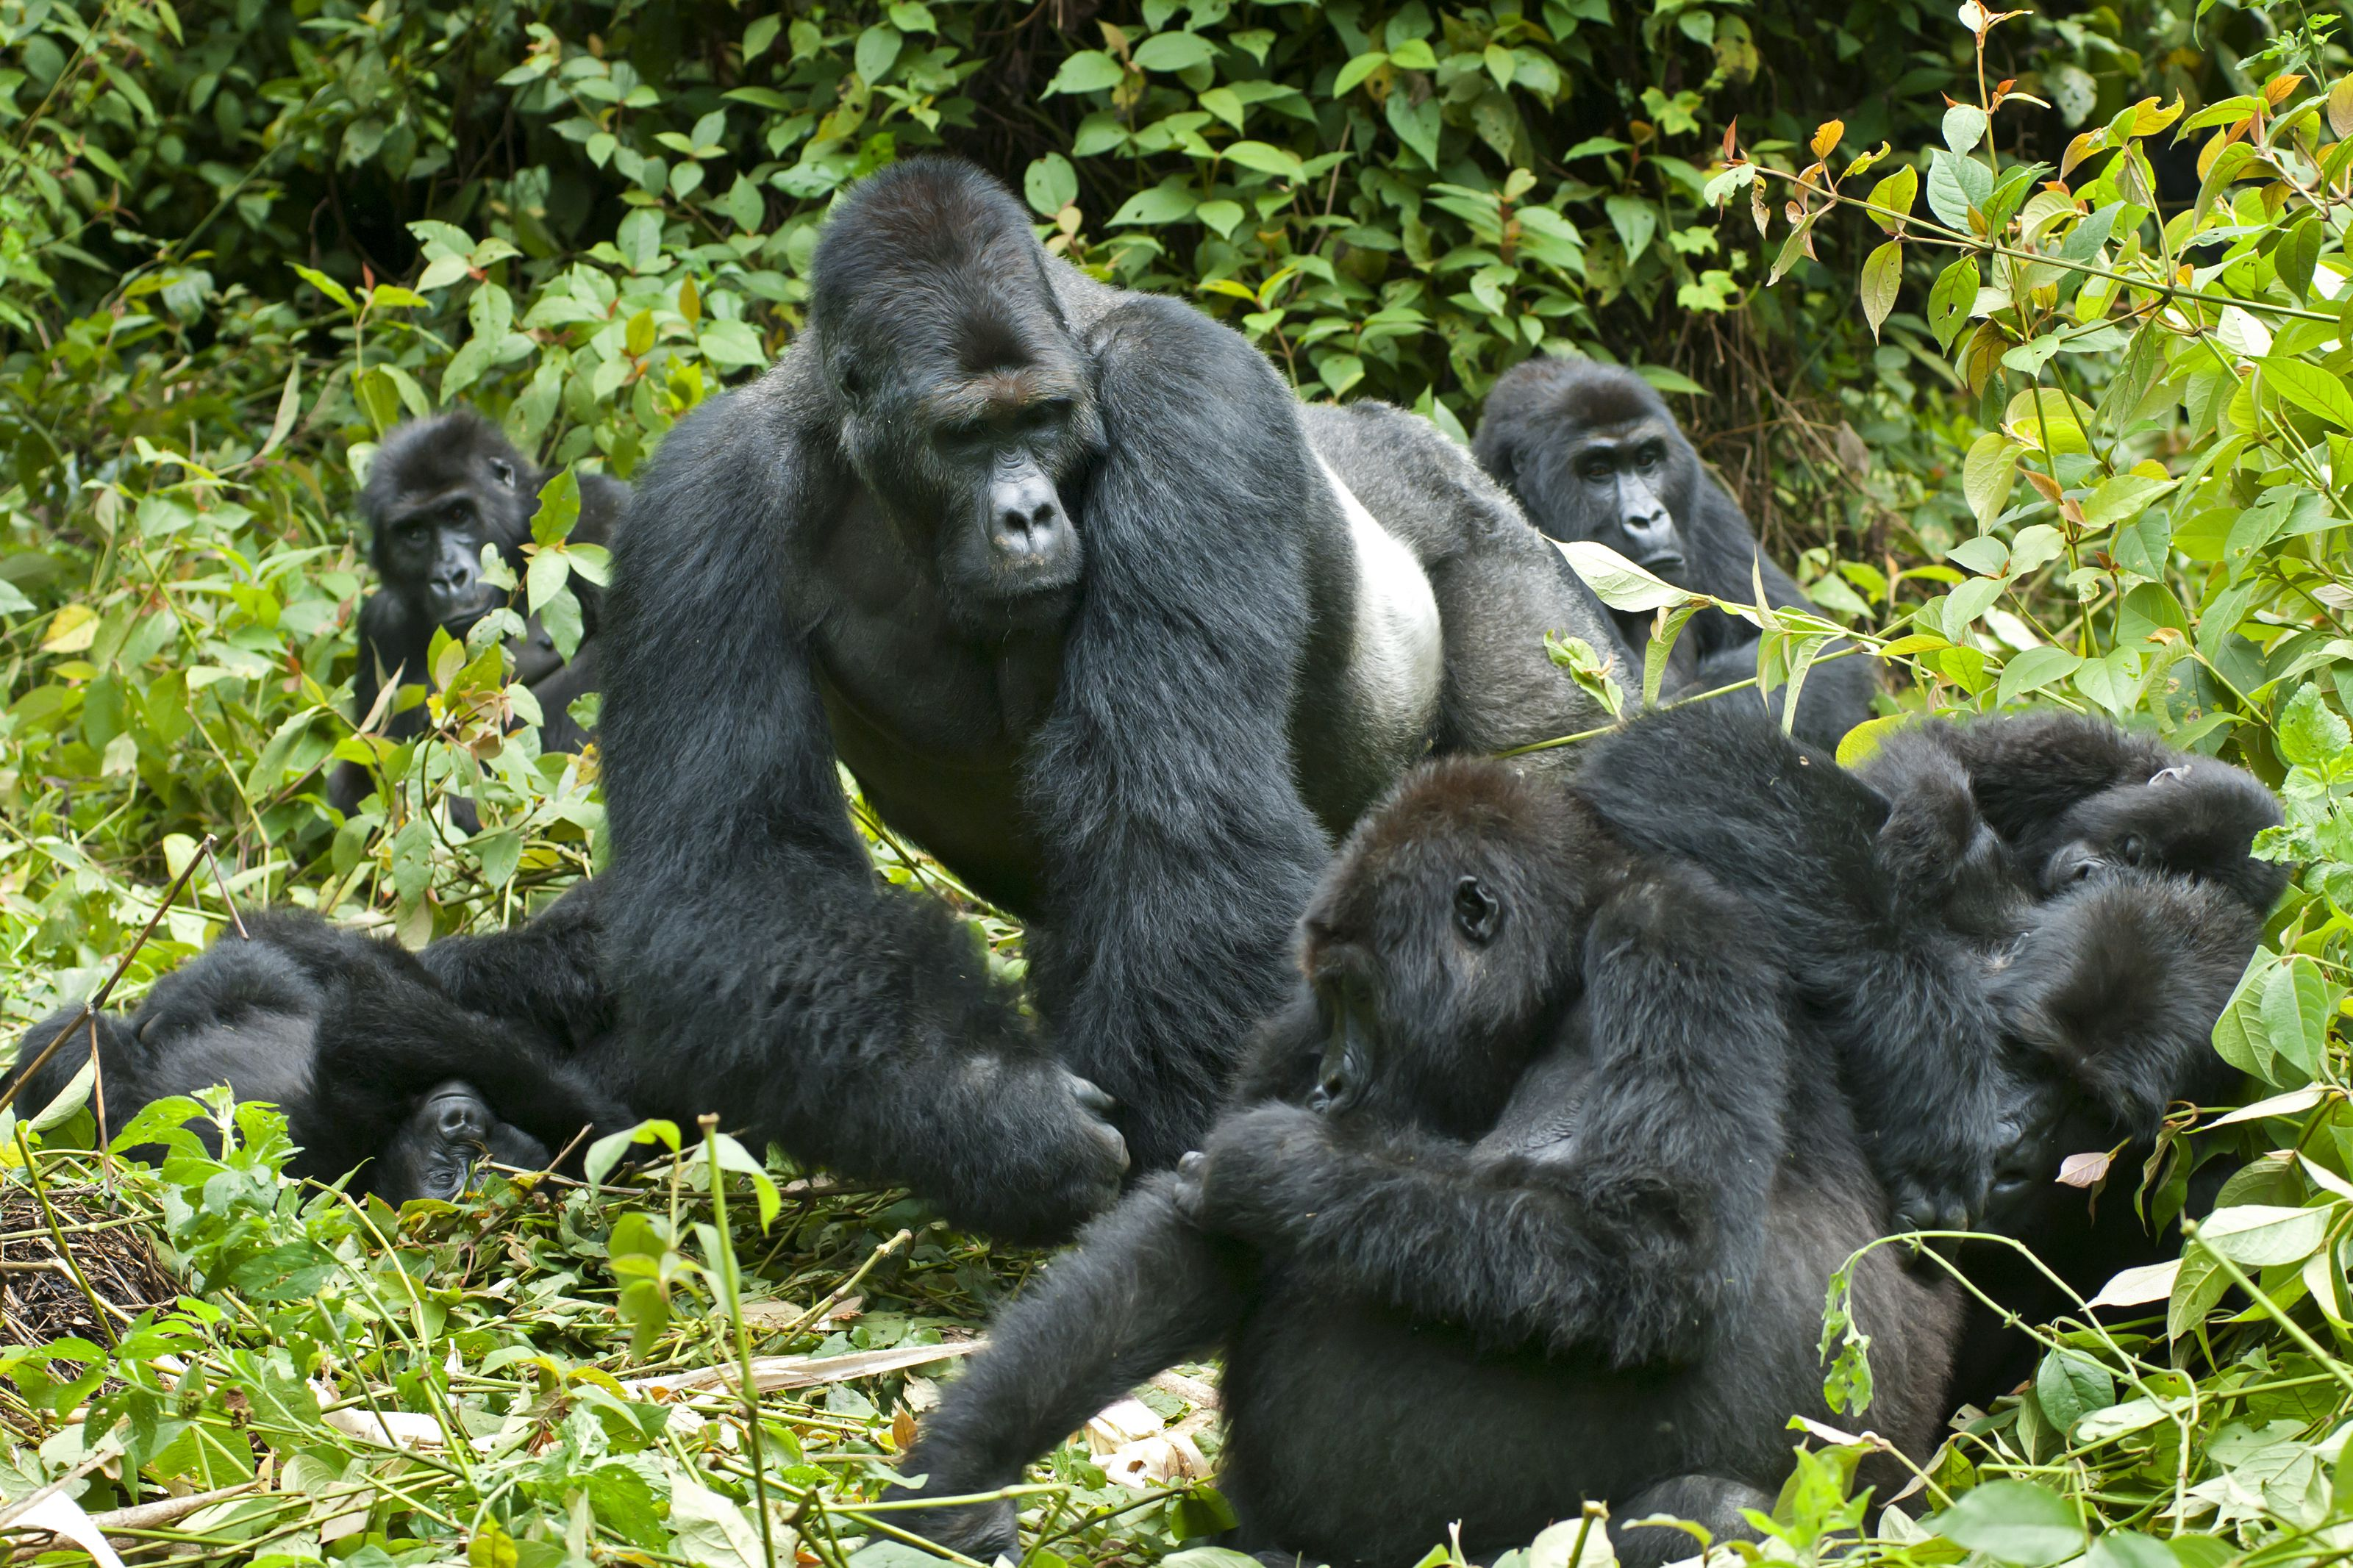 The Best Places To Go Gorilla Trekking In Africa